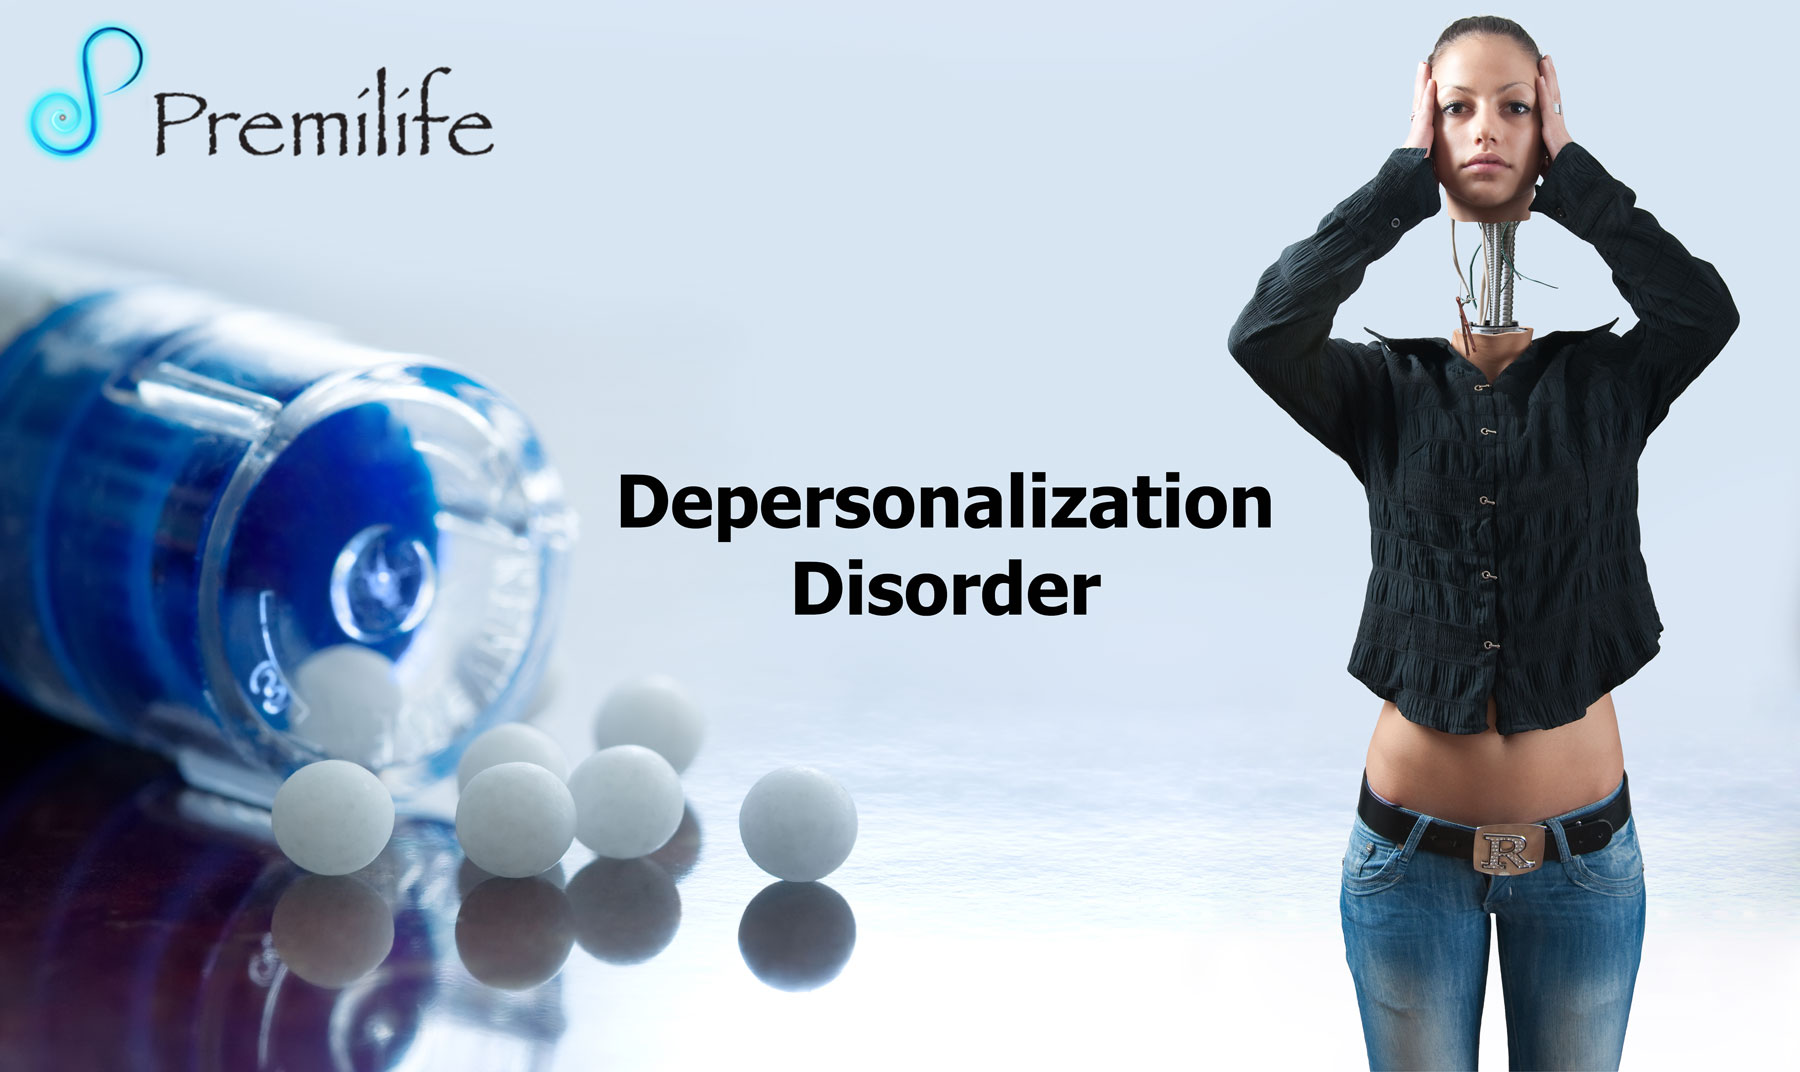 8530311 additionally 4161846 also Panax Ginseng besides Depersonalization Disorder likewise 6524039. on brain endocrine system